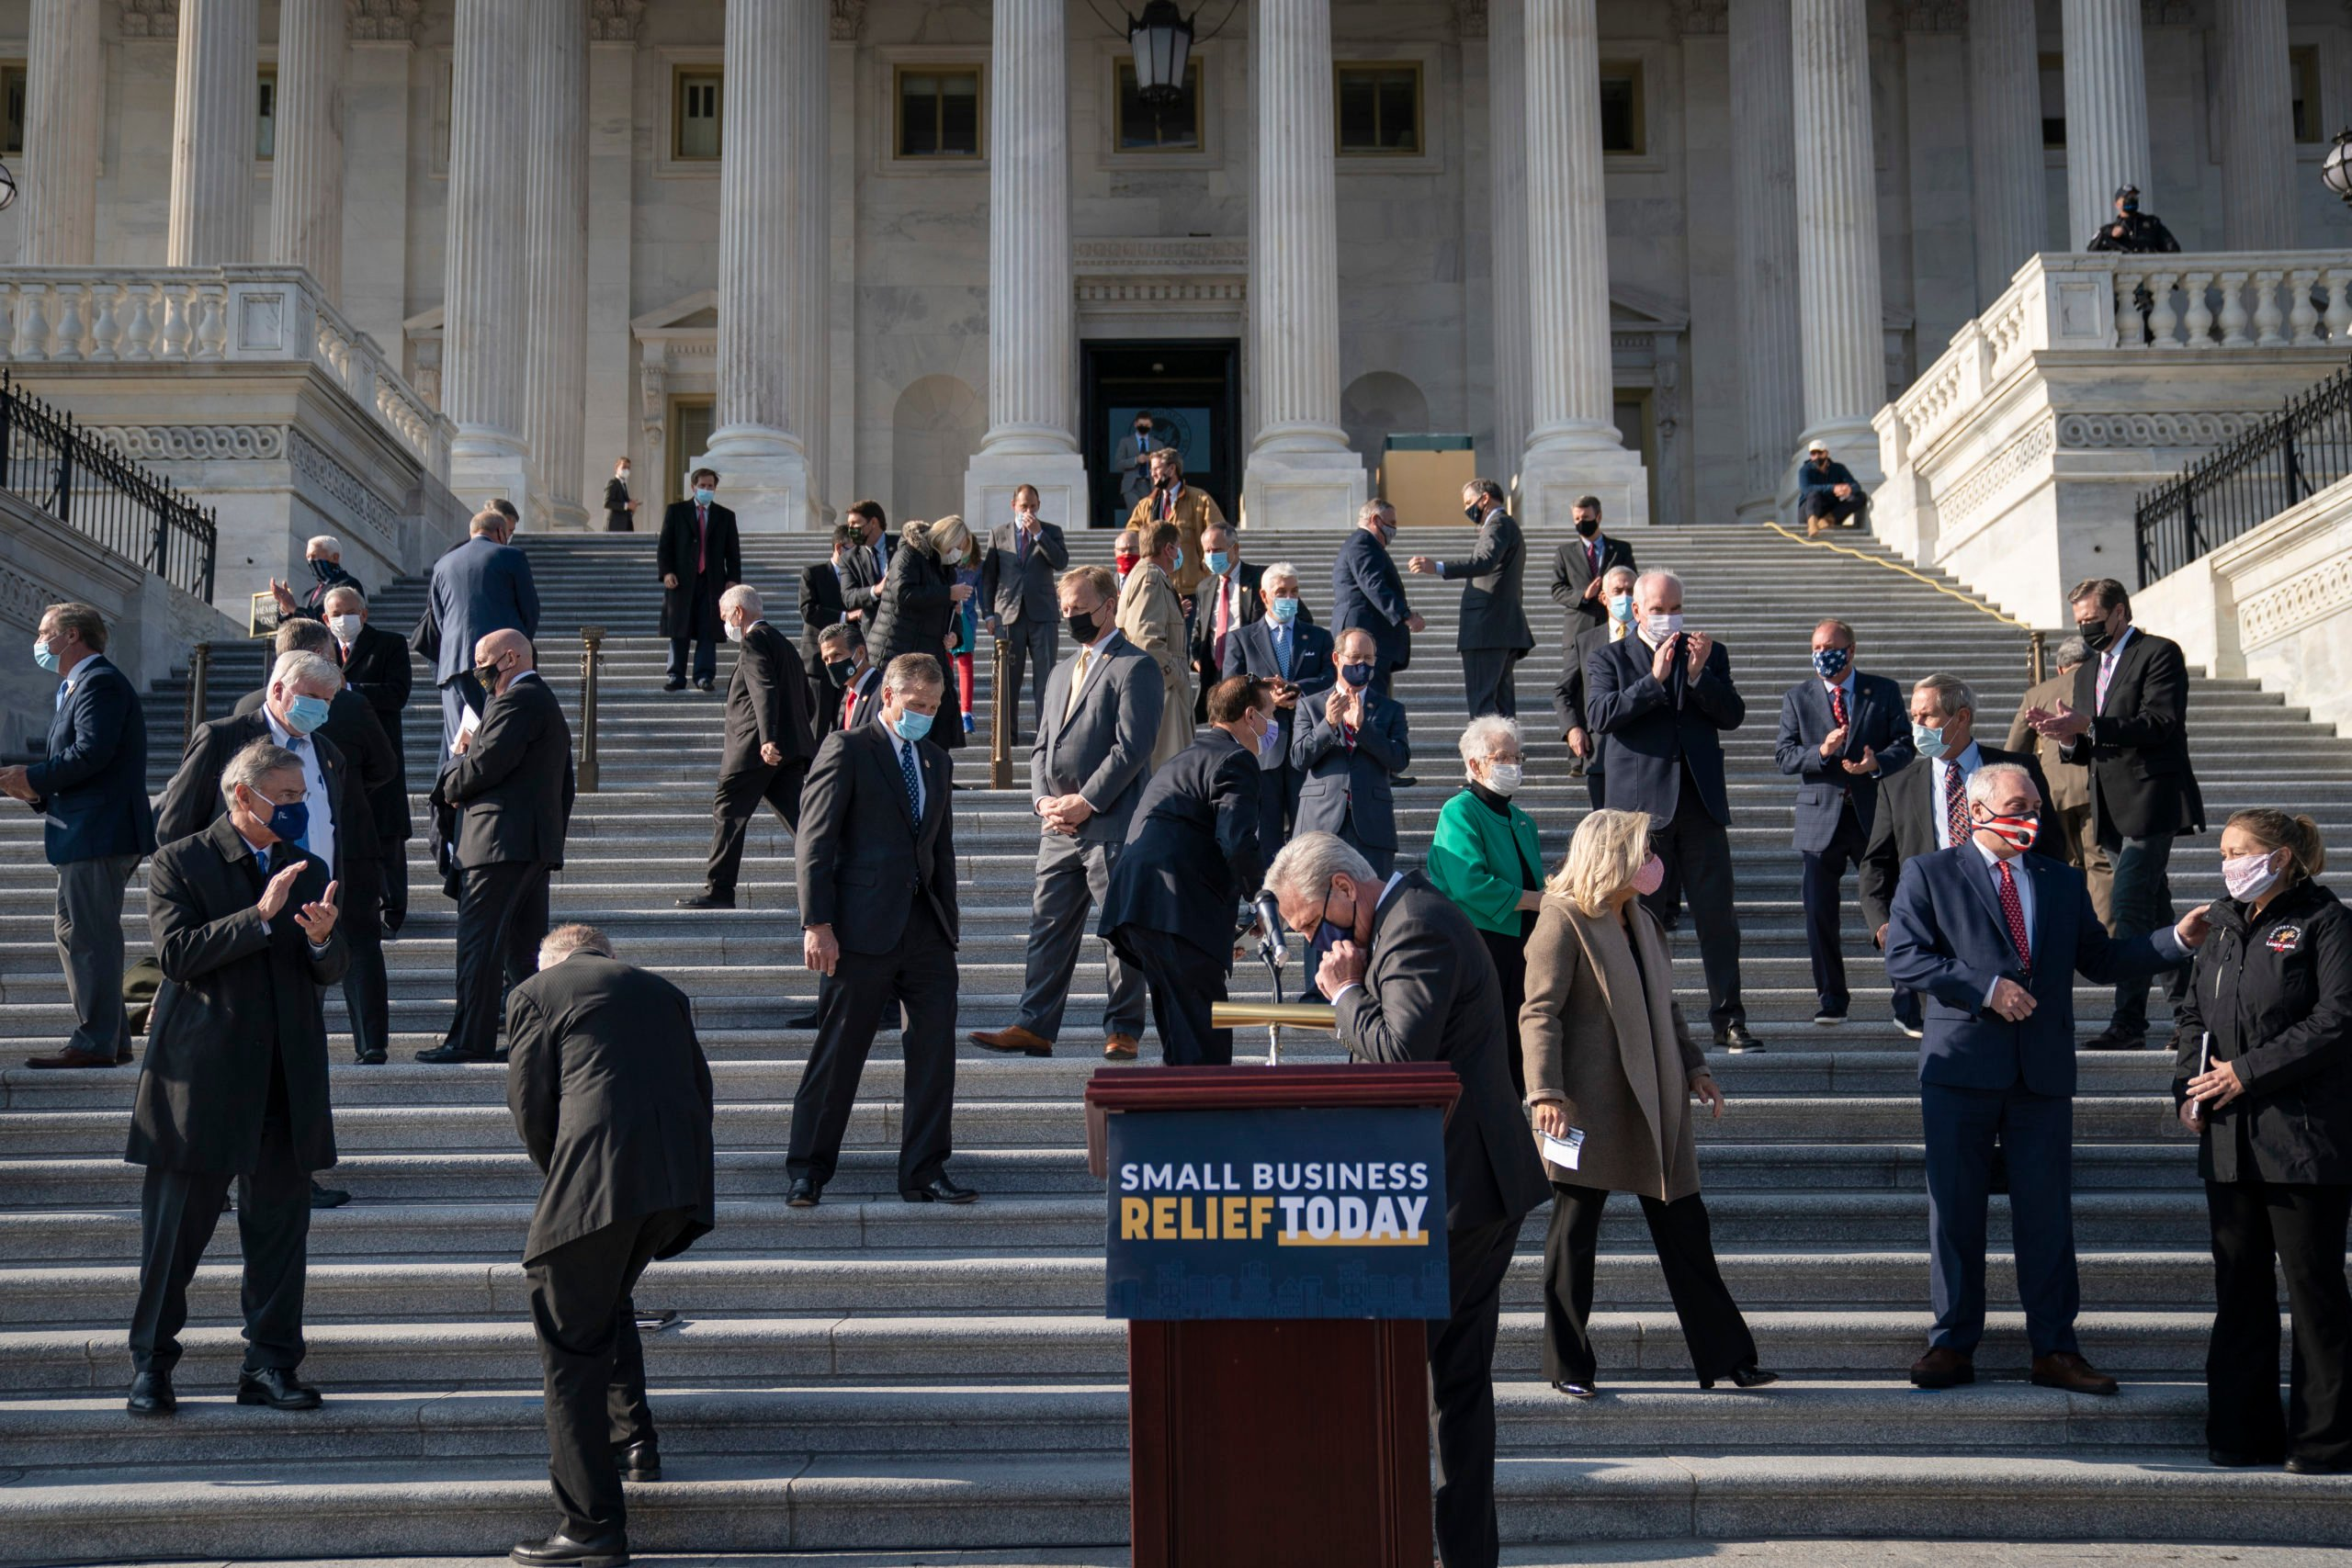 House Minority Leader Kevin McCarthy and fellow Republicans host a news conference outside the Capitol on Dec. 10. (Drew Angerer/Getty Images)